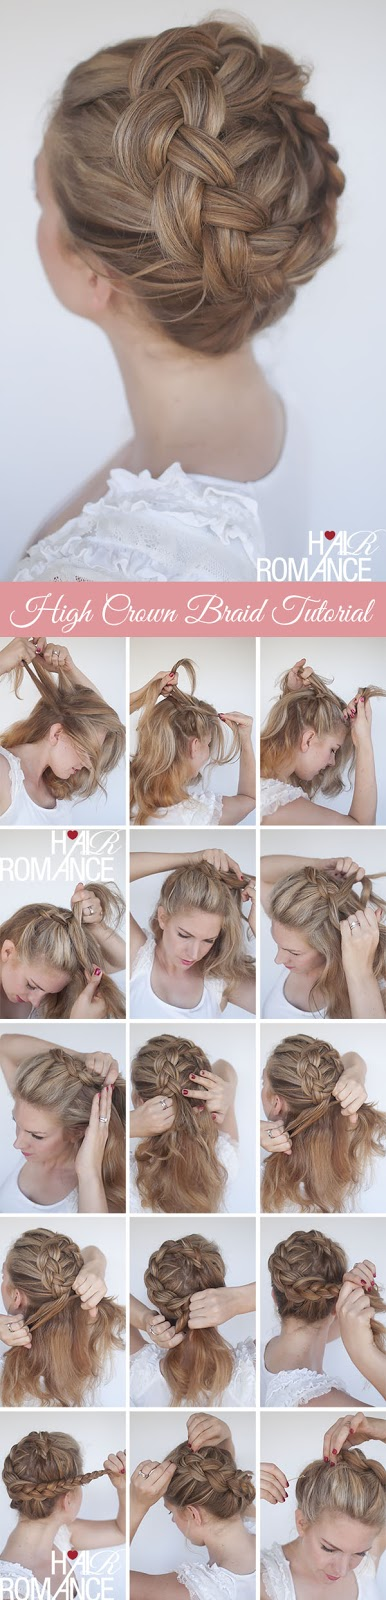 4.NEW BRAID TUTORIAL – THE HIGH BRAIDED CROWN HAIRSTYLE